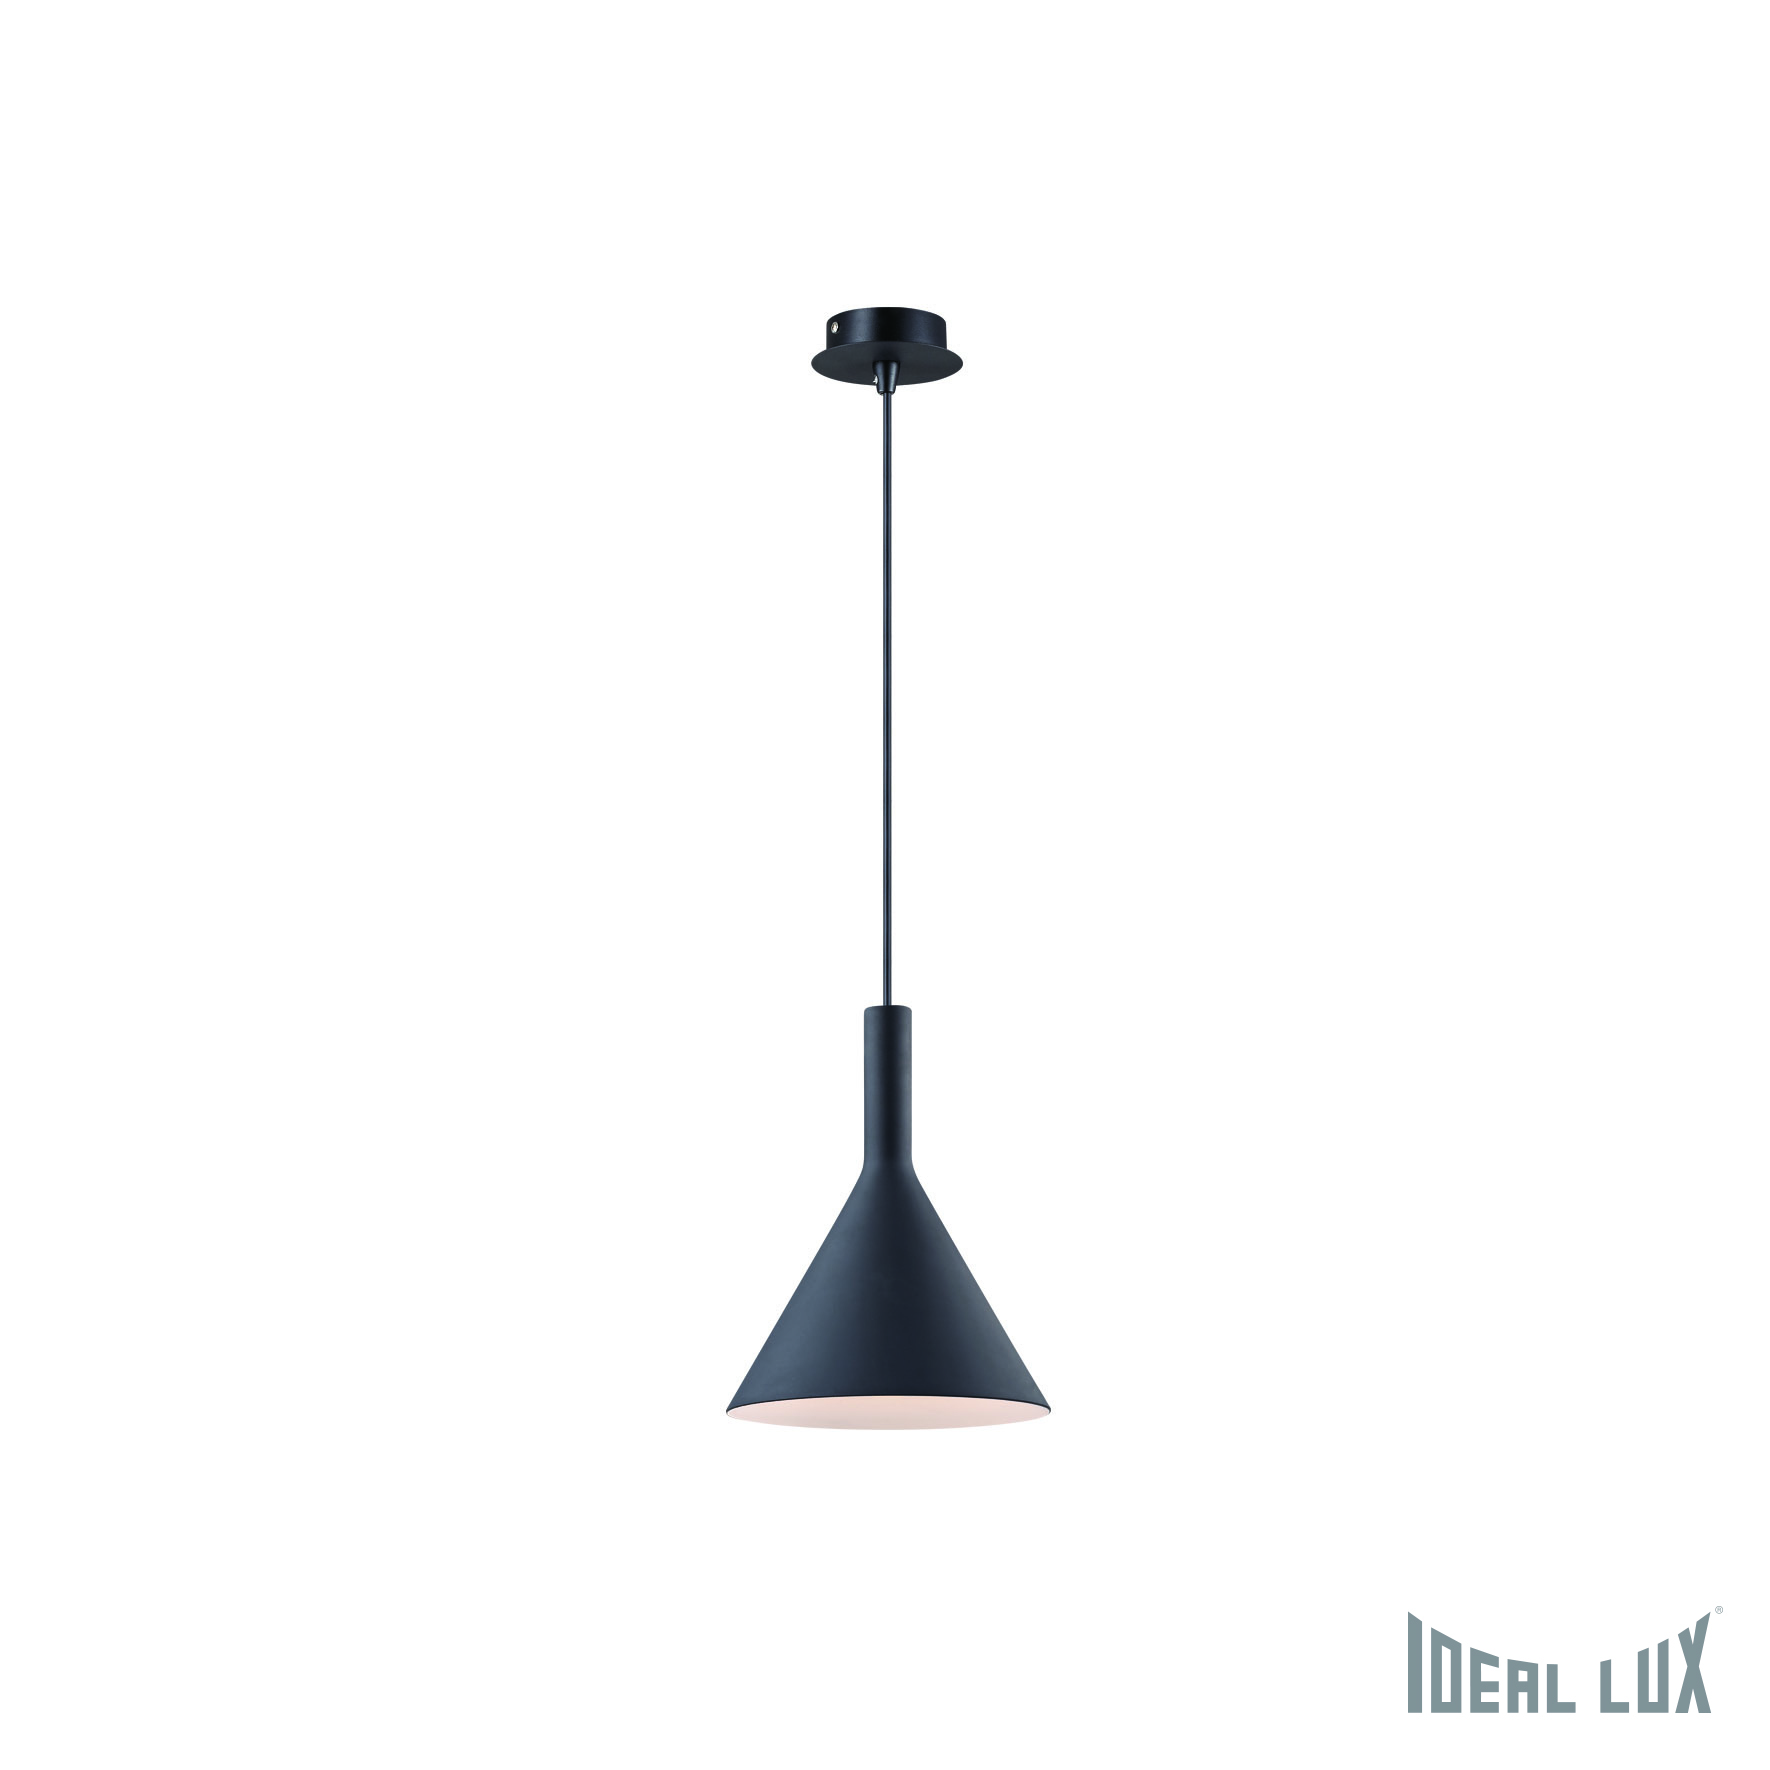 Светильник подвесной Ideal Lux Cocktail COCKTAIL SP1 SMALL NERO namat подвесной светильник ideal lux flut sp1 small nero